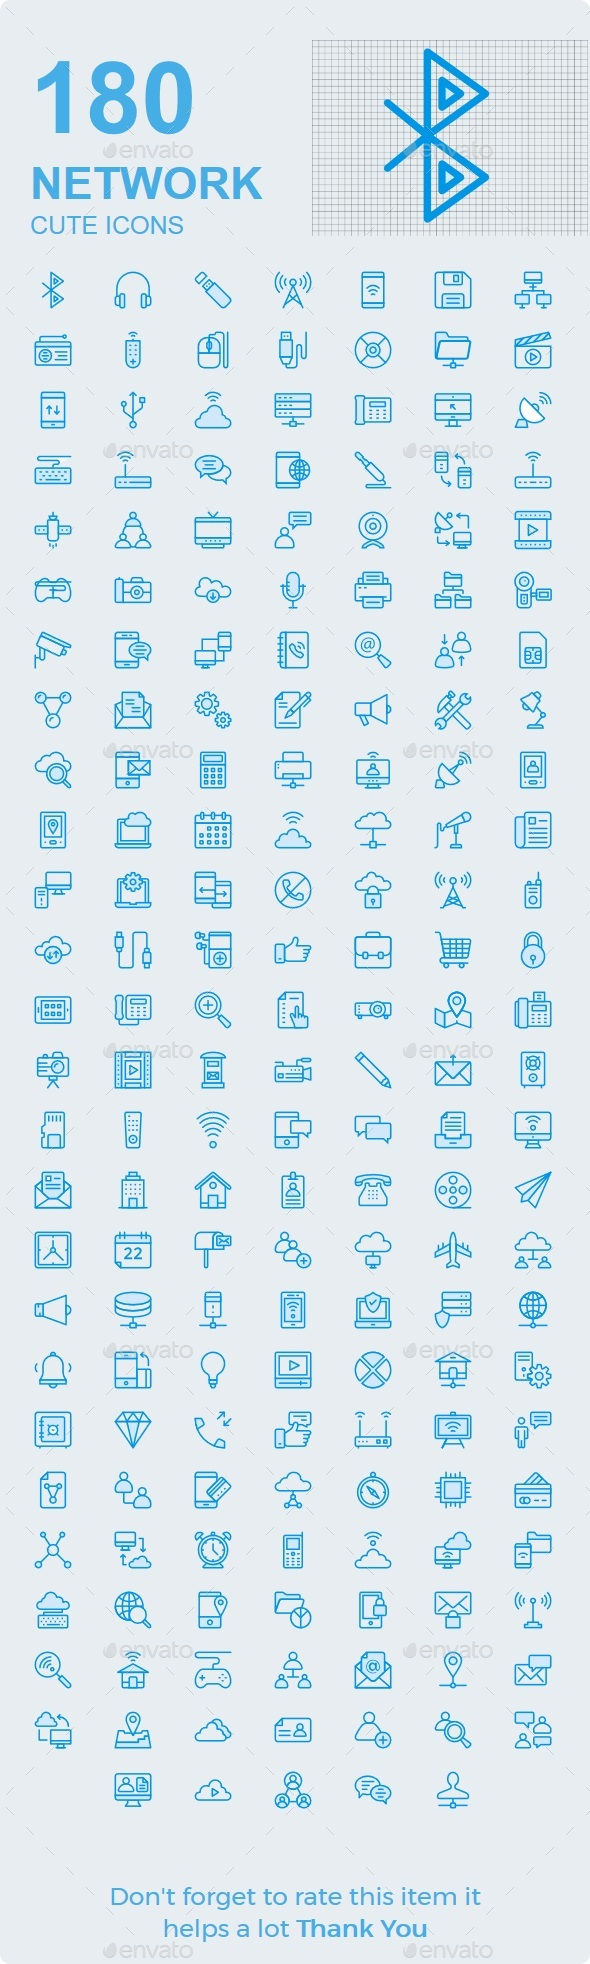 GraphicRiver Network & Communication Cute icons 20375192